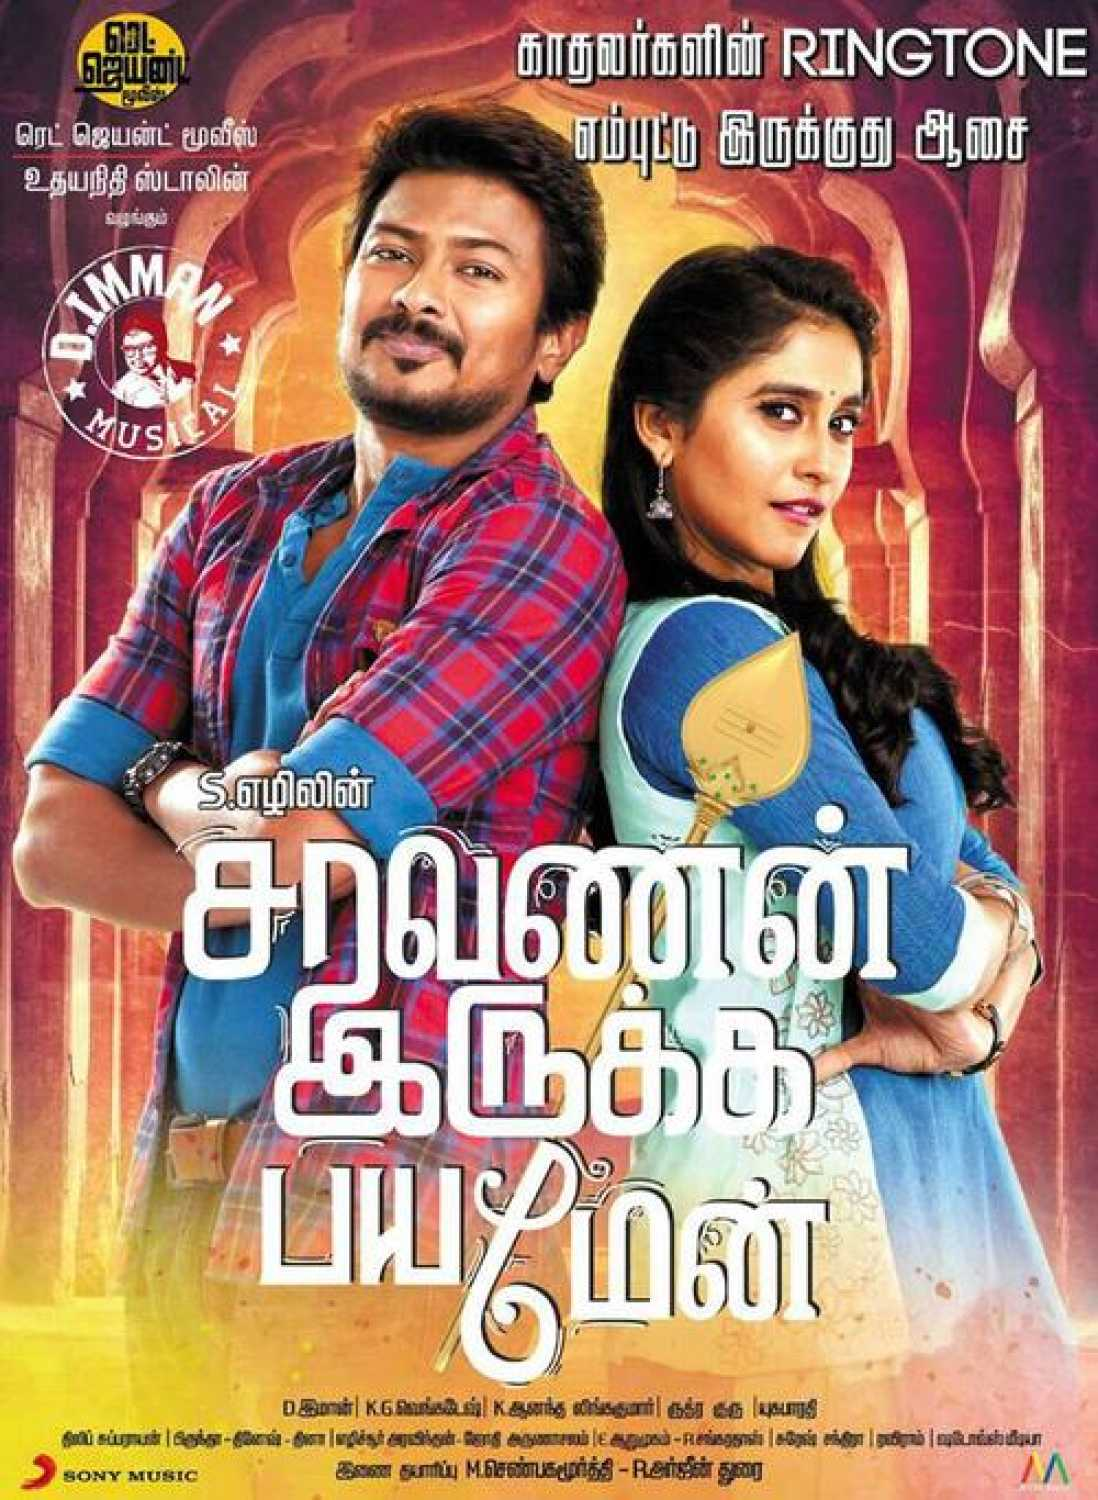 Saravanan Irukka Bayamaen 2017 Hindi ORG Dual Audio 720p UNCUT HDRip 1.25GB Download